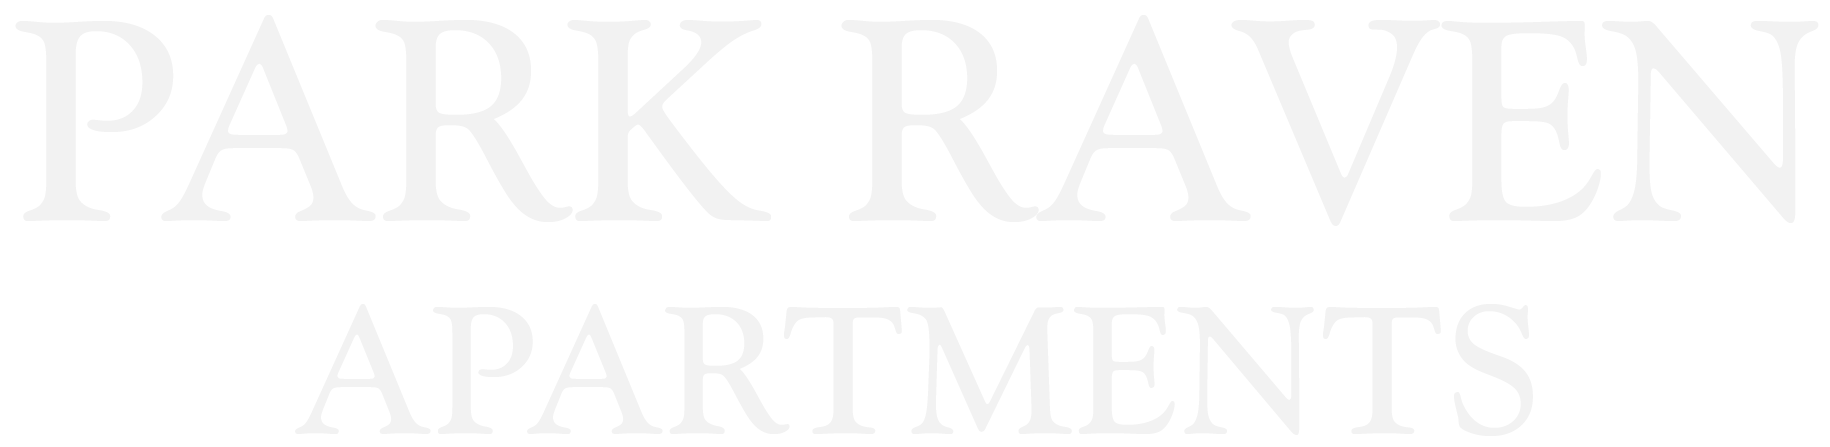 Park Raven Apartments Logo